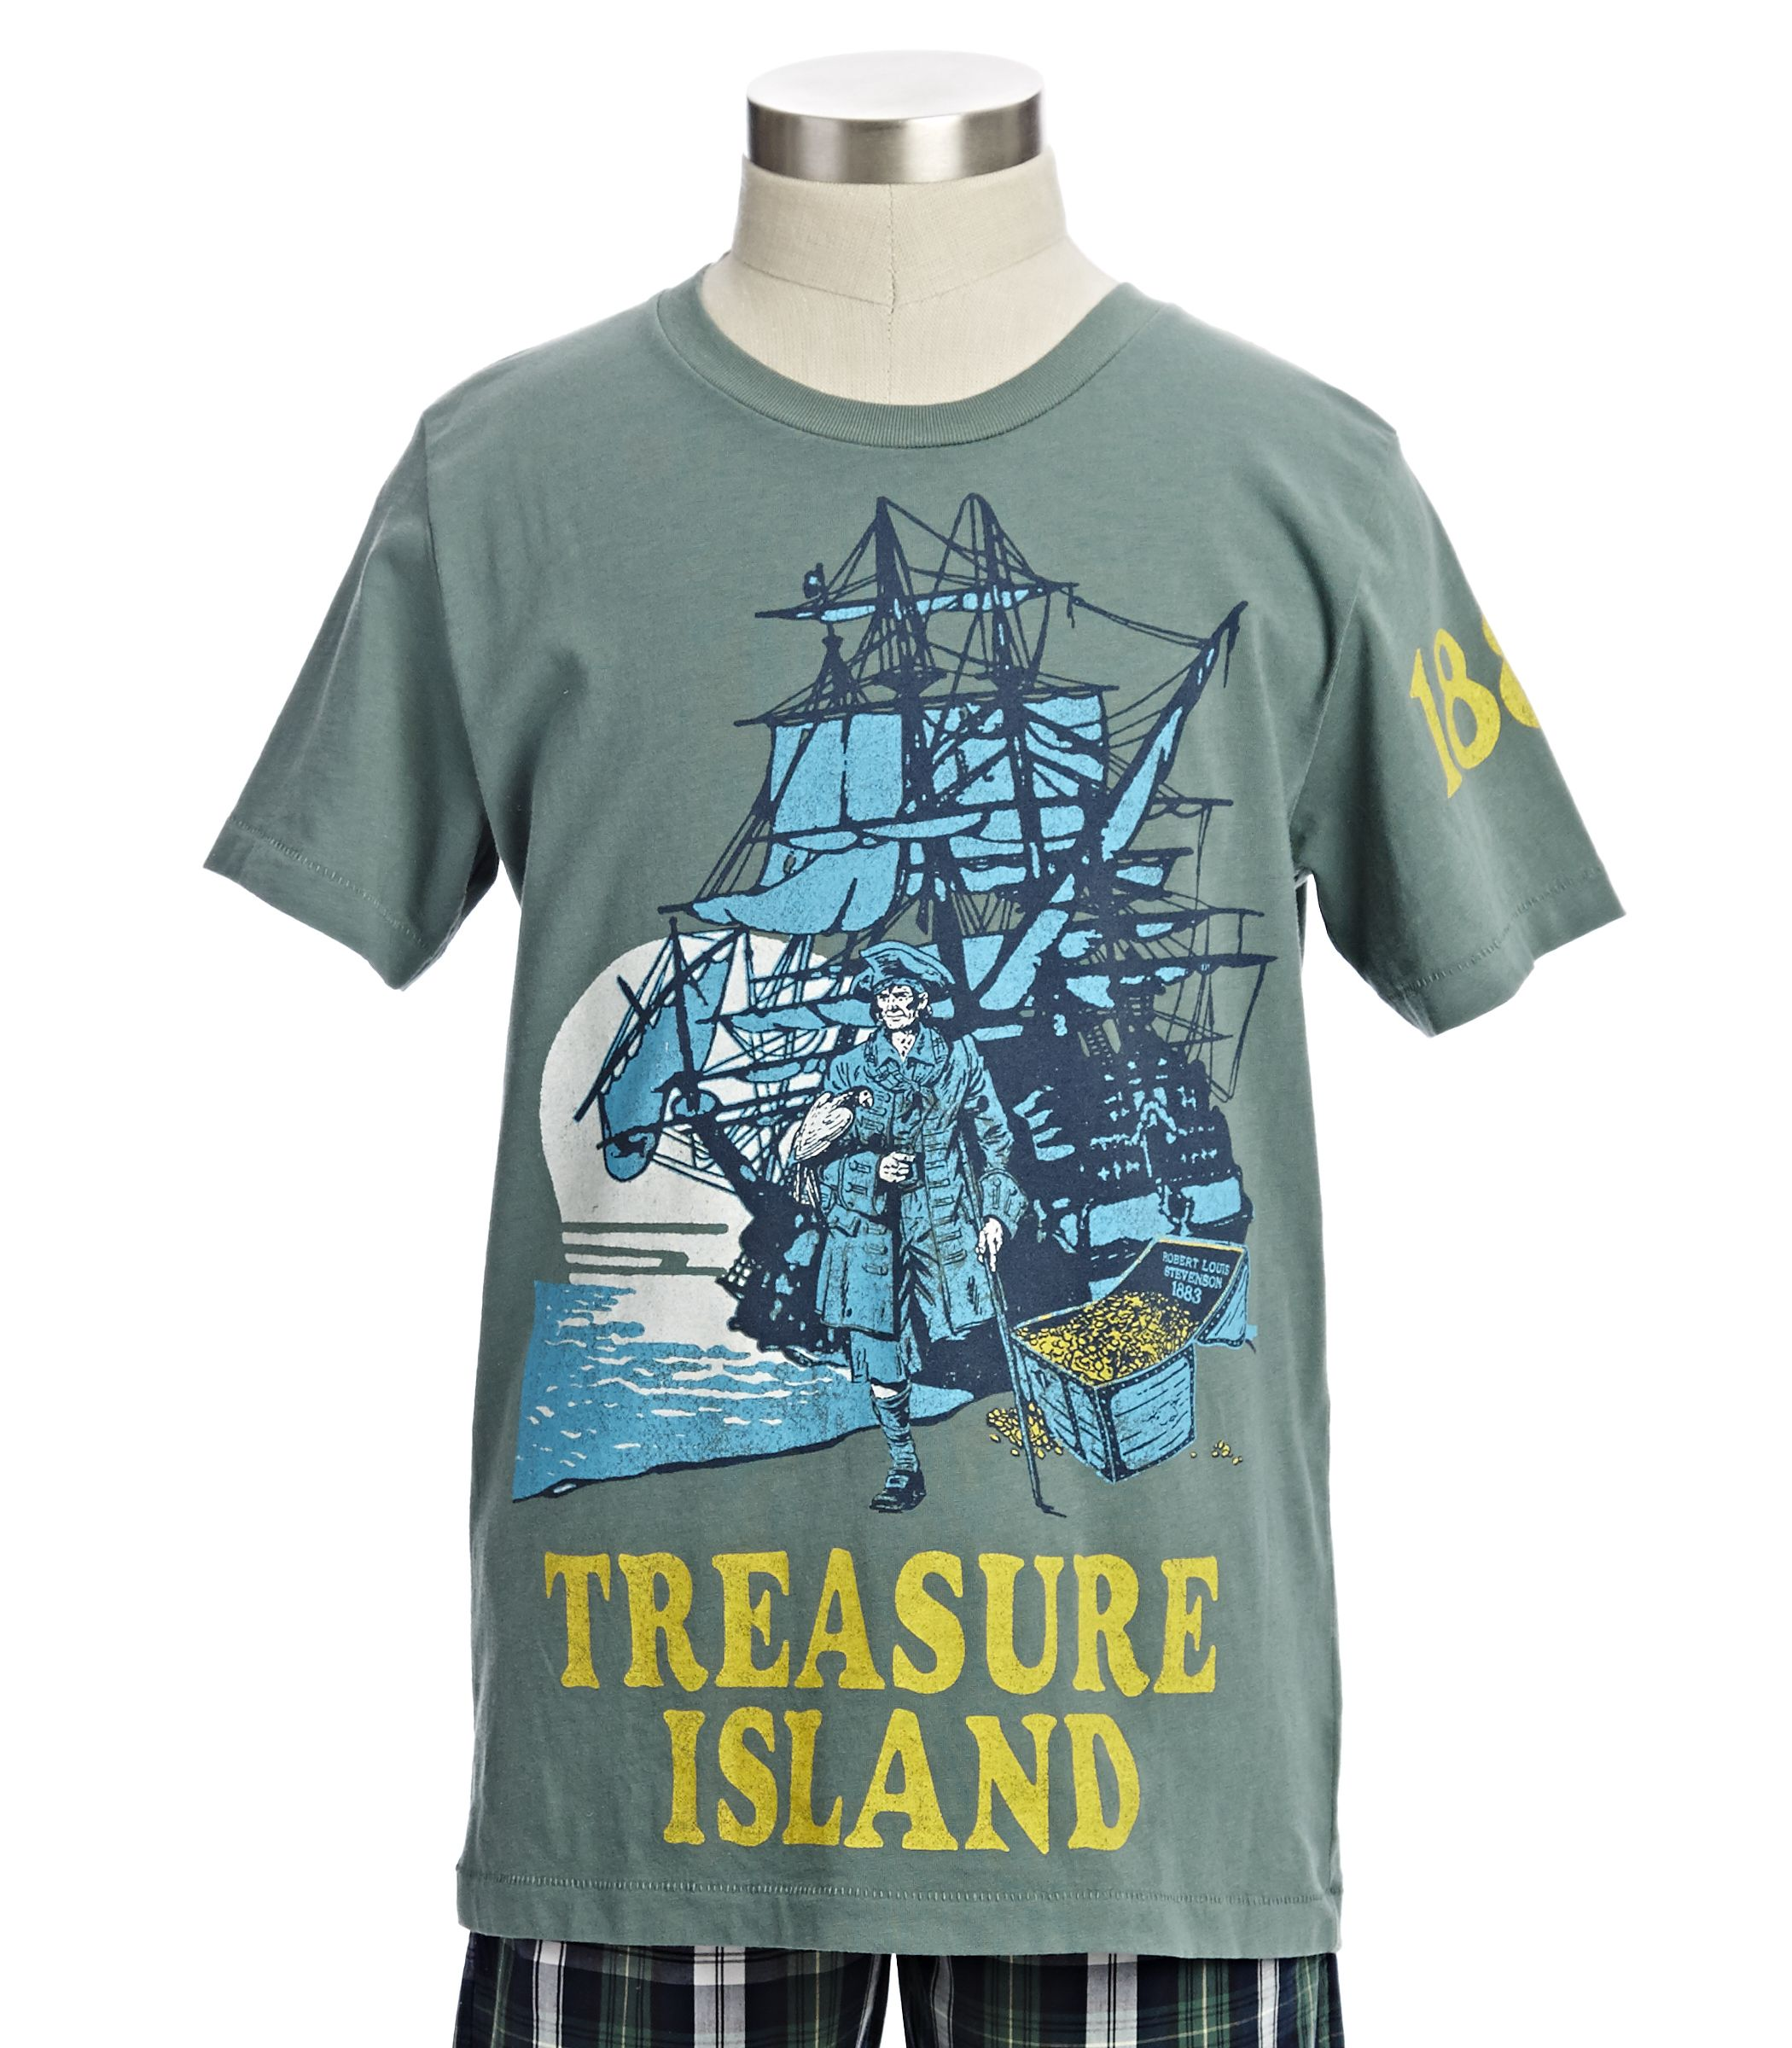 Treasure Island Tee, now available at Peekkids com! | For